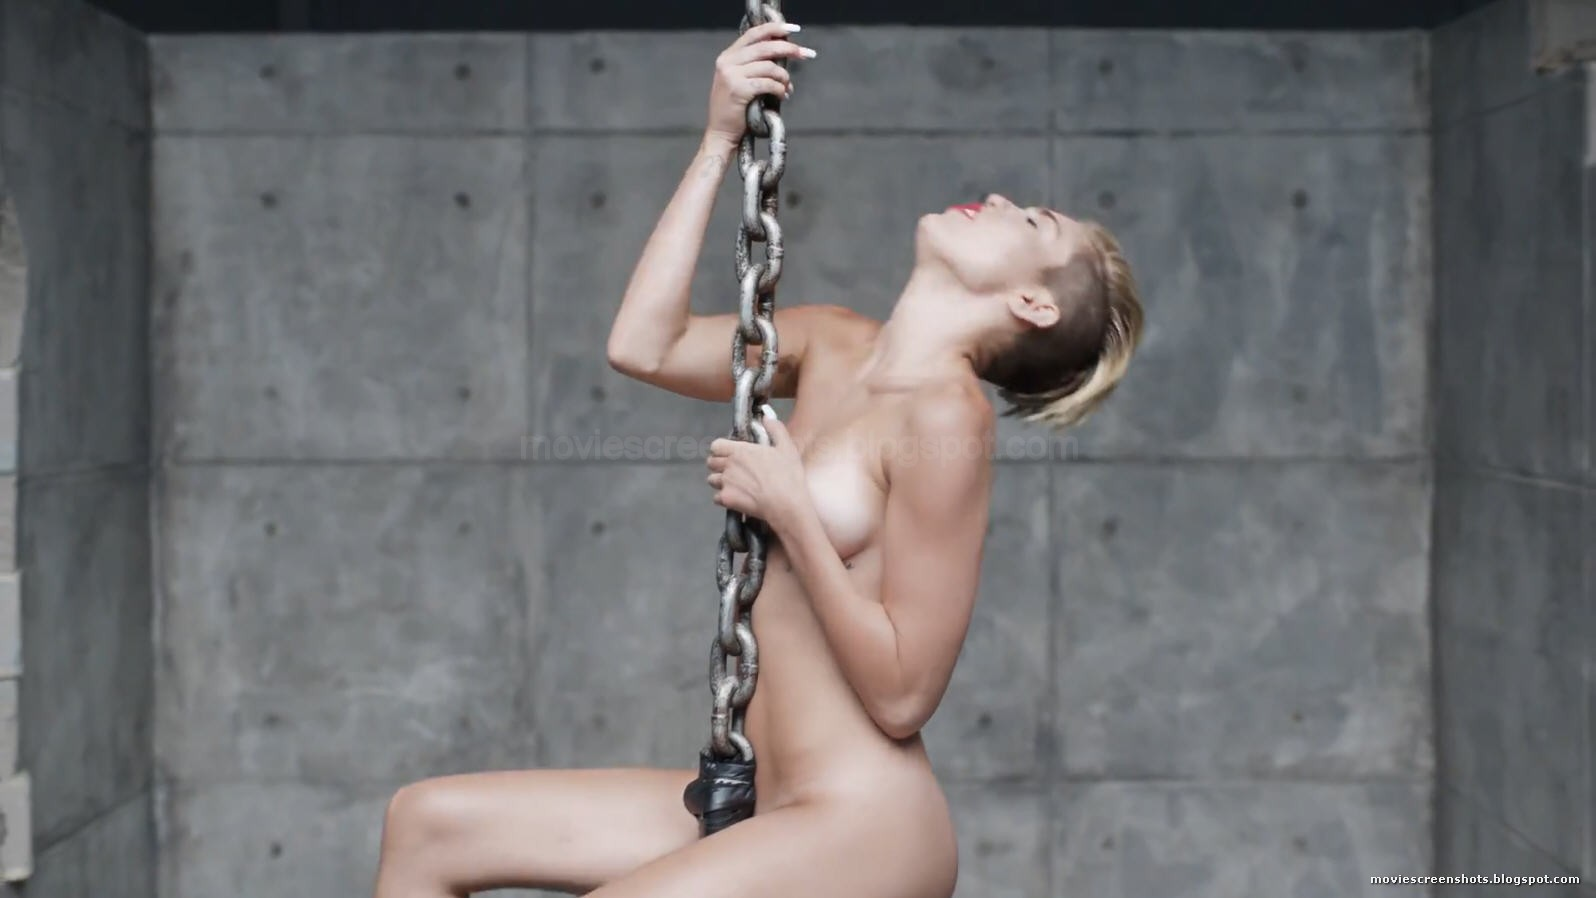 image Miley cyrus wrecking ball porn edit